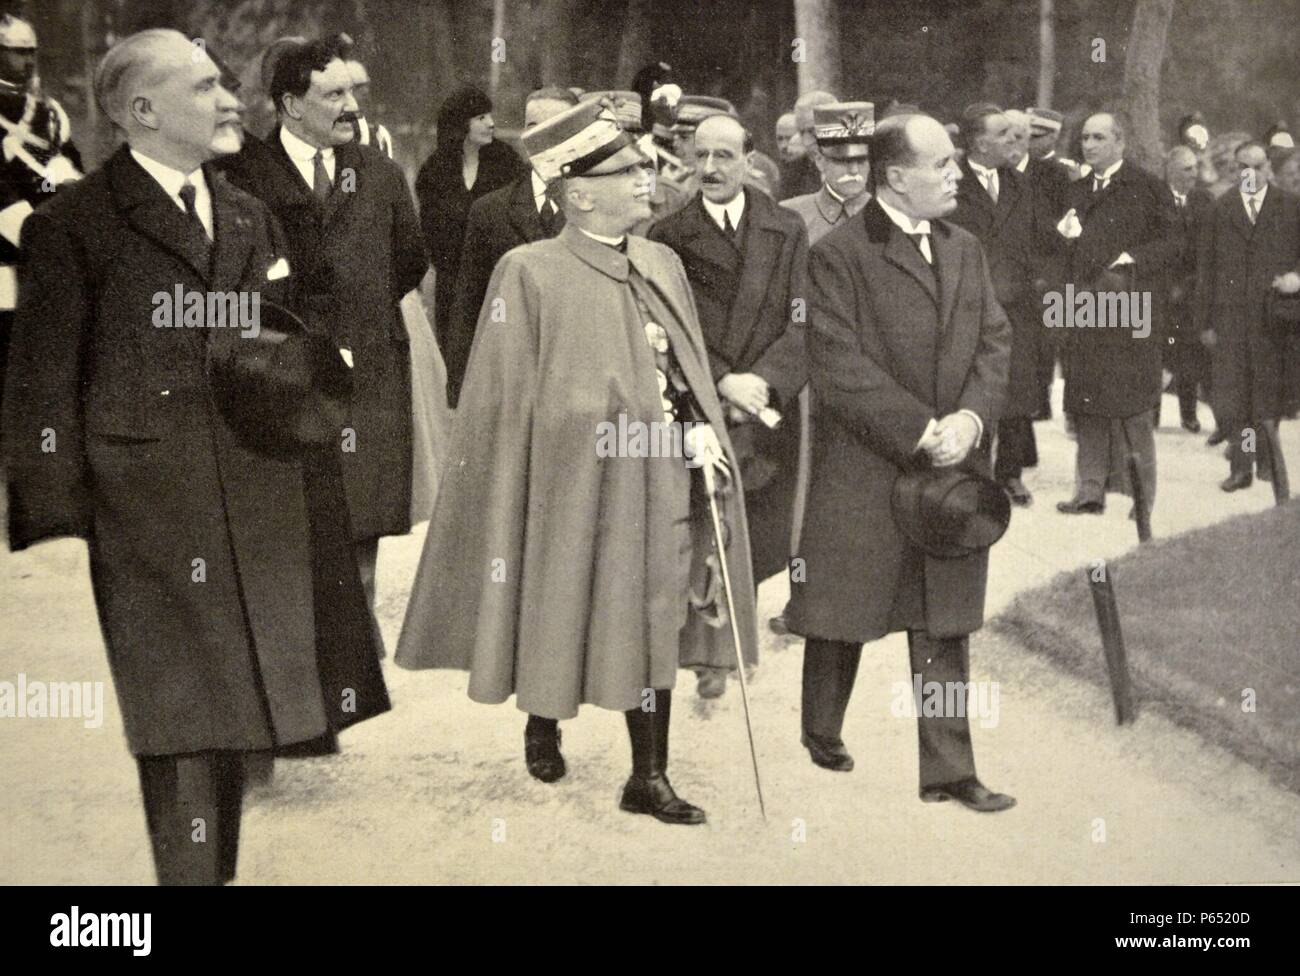 Vittorio Emanuele III, King of Italy. Mussolini attend the inauguration of the monument to Umberto I Stock Photo